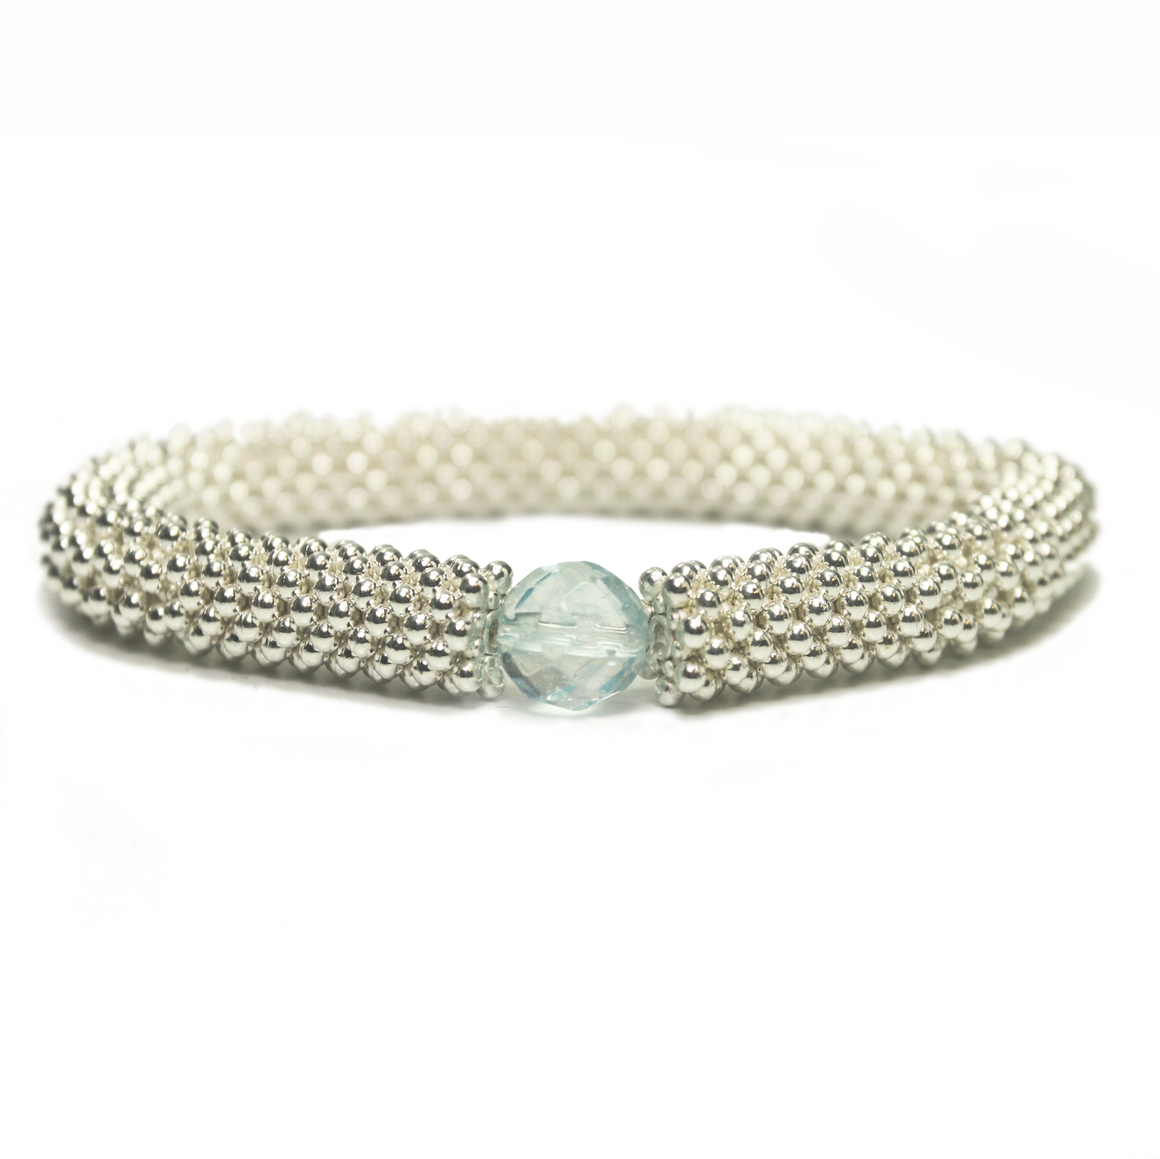 The Silverblue Bracelet